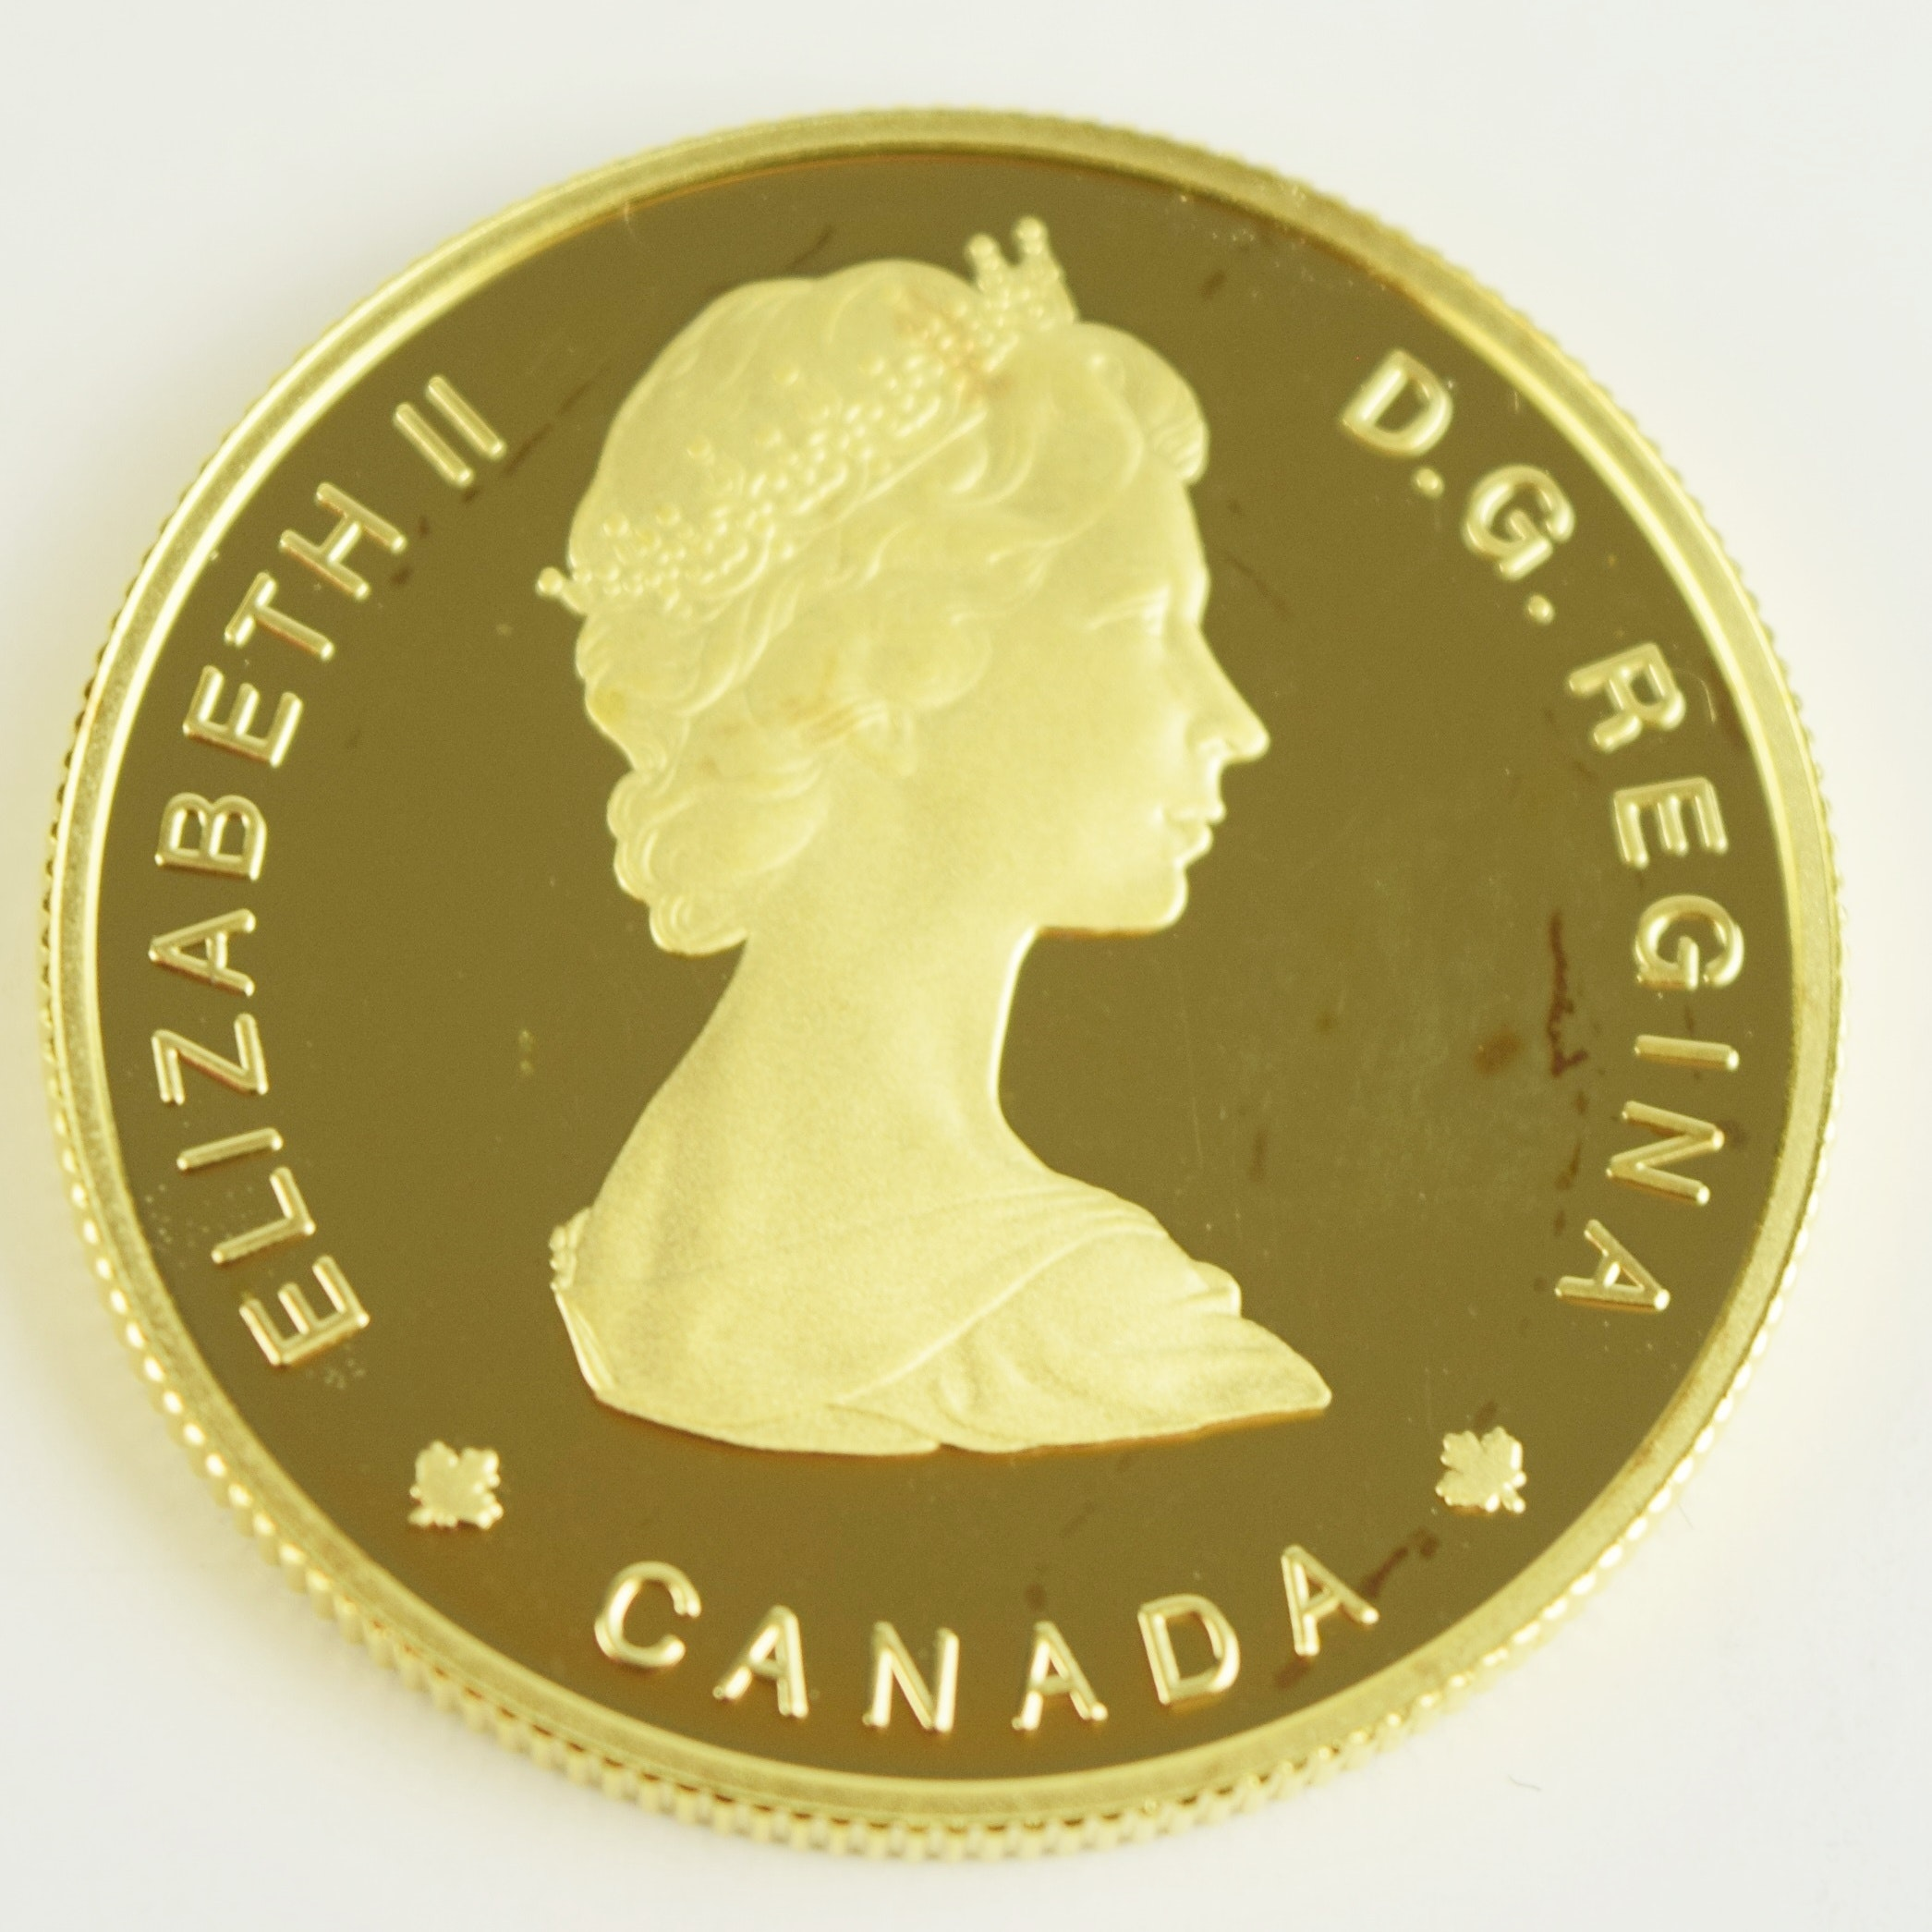 1985 Royal Canadian Mint $100 22K Gold National Parks Proof Coin